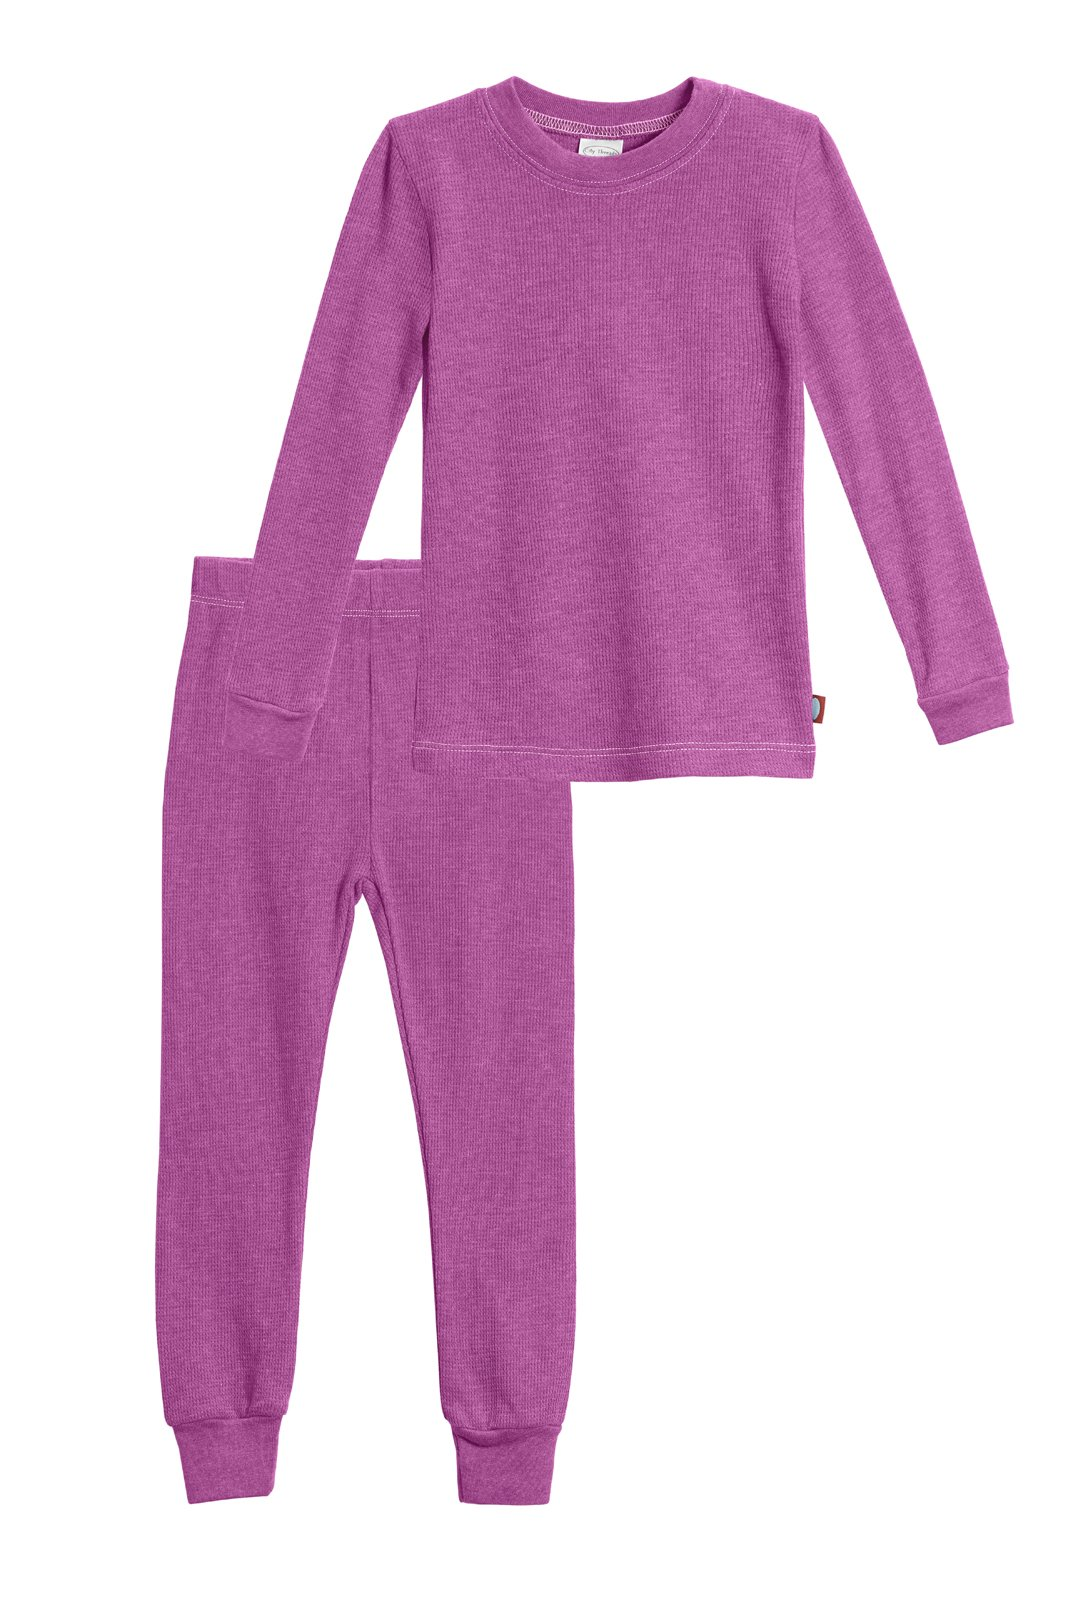 City Threads Little Girls Thermal Underwear Set Perfect for Sensitive Skin SPD Sensory Friendly,Plum, 2T by City Threads